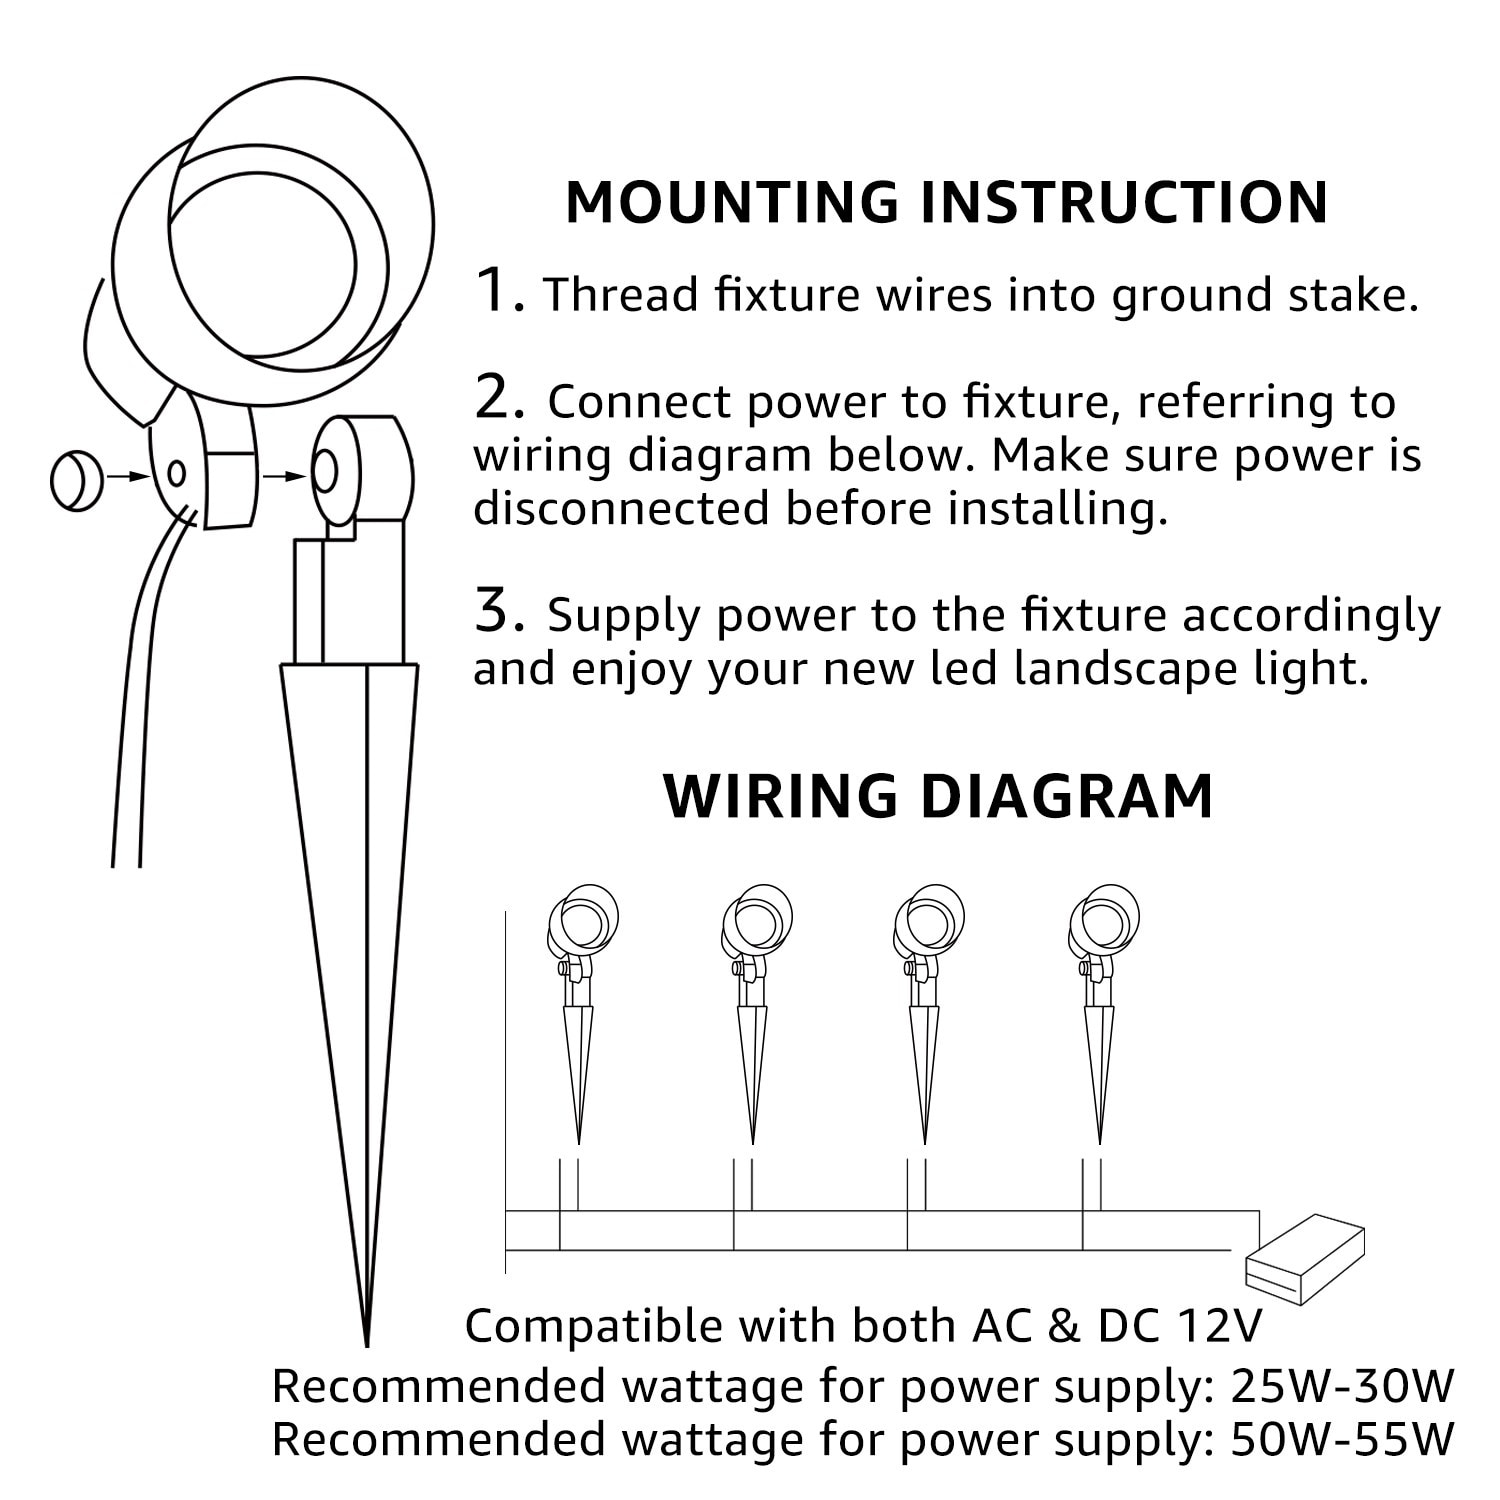 Ac Dc Light Wiring - home built led lighting otherpower Led Dc Wiring Diagram on led strip wiring diagram, france led wiring diagram, led light wiring diagram,